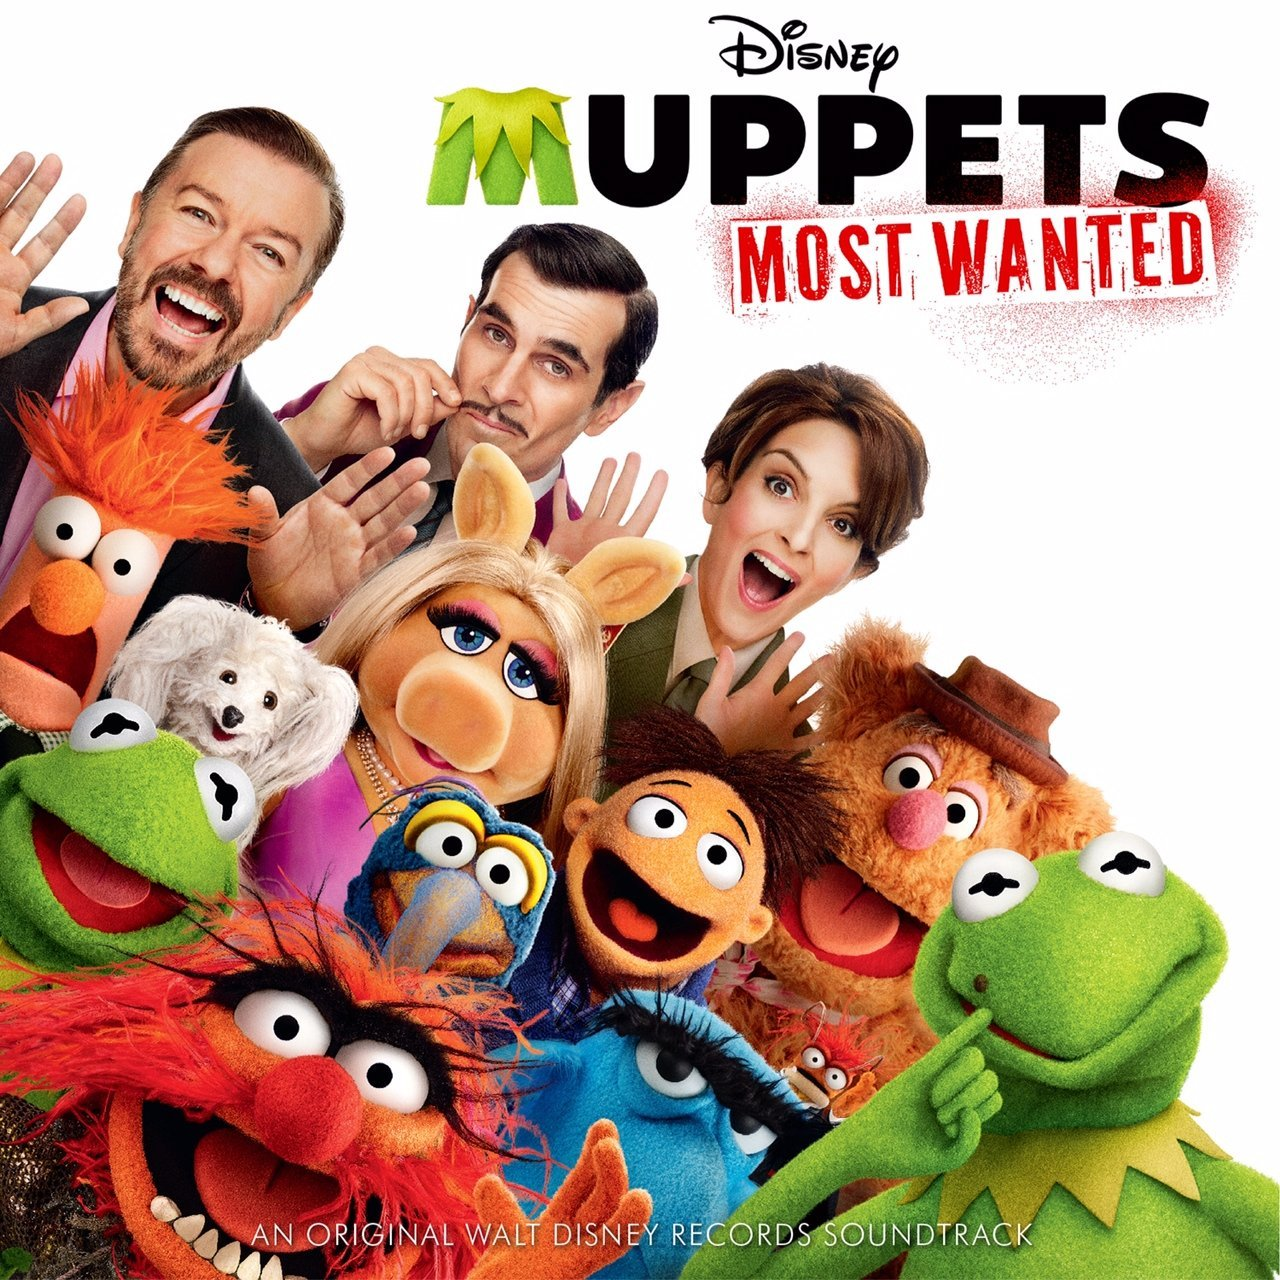 muppets most wanted Top 50 Songs of 2014